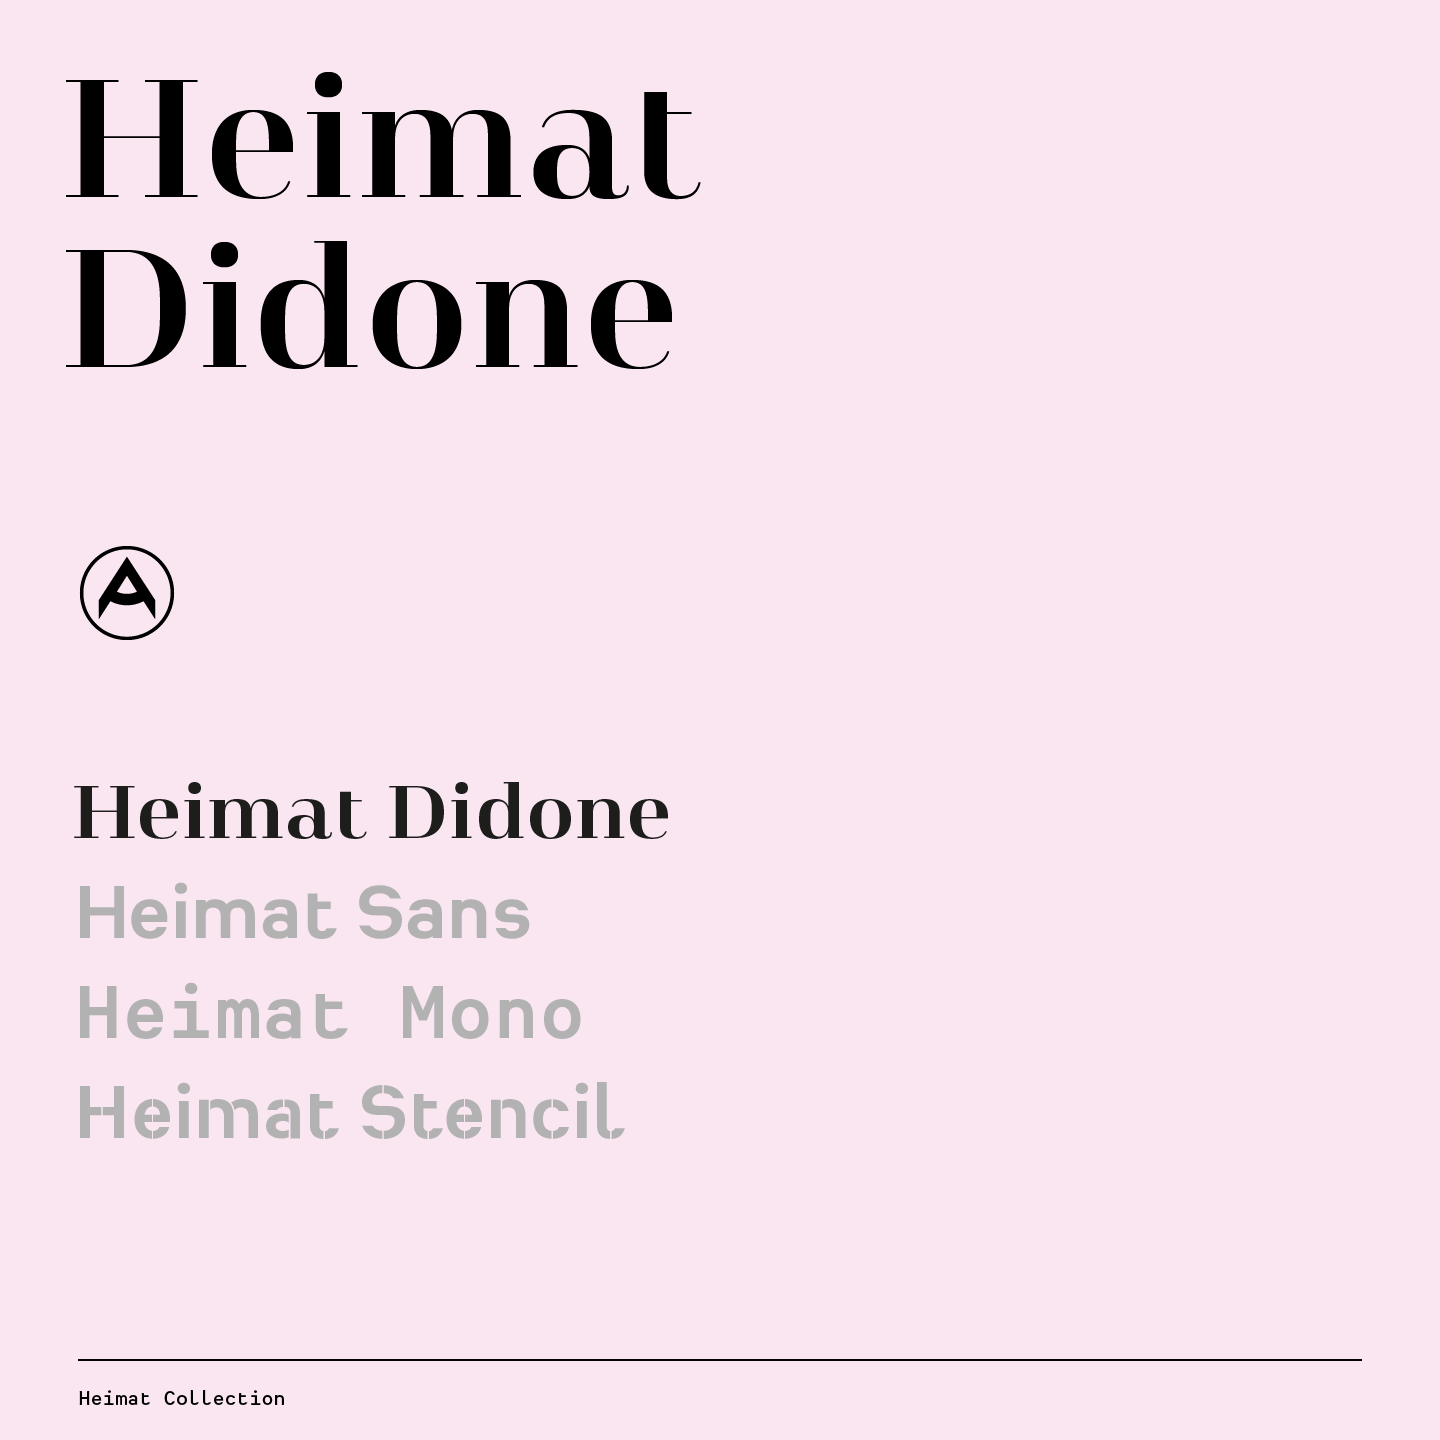 Heimat Didone, a high contrast serif font family by Christoph Dunst of Atlas Font Foundry.